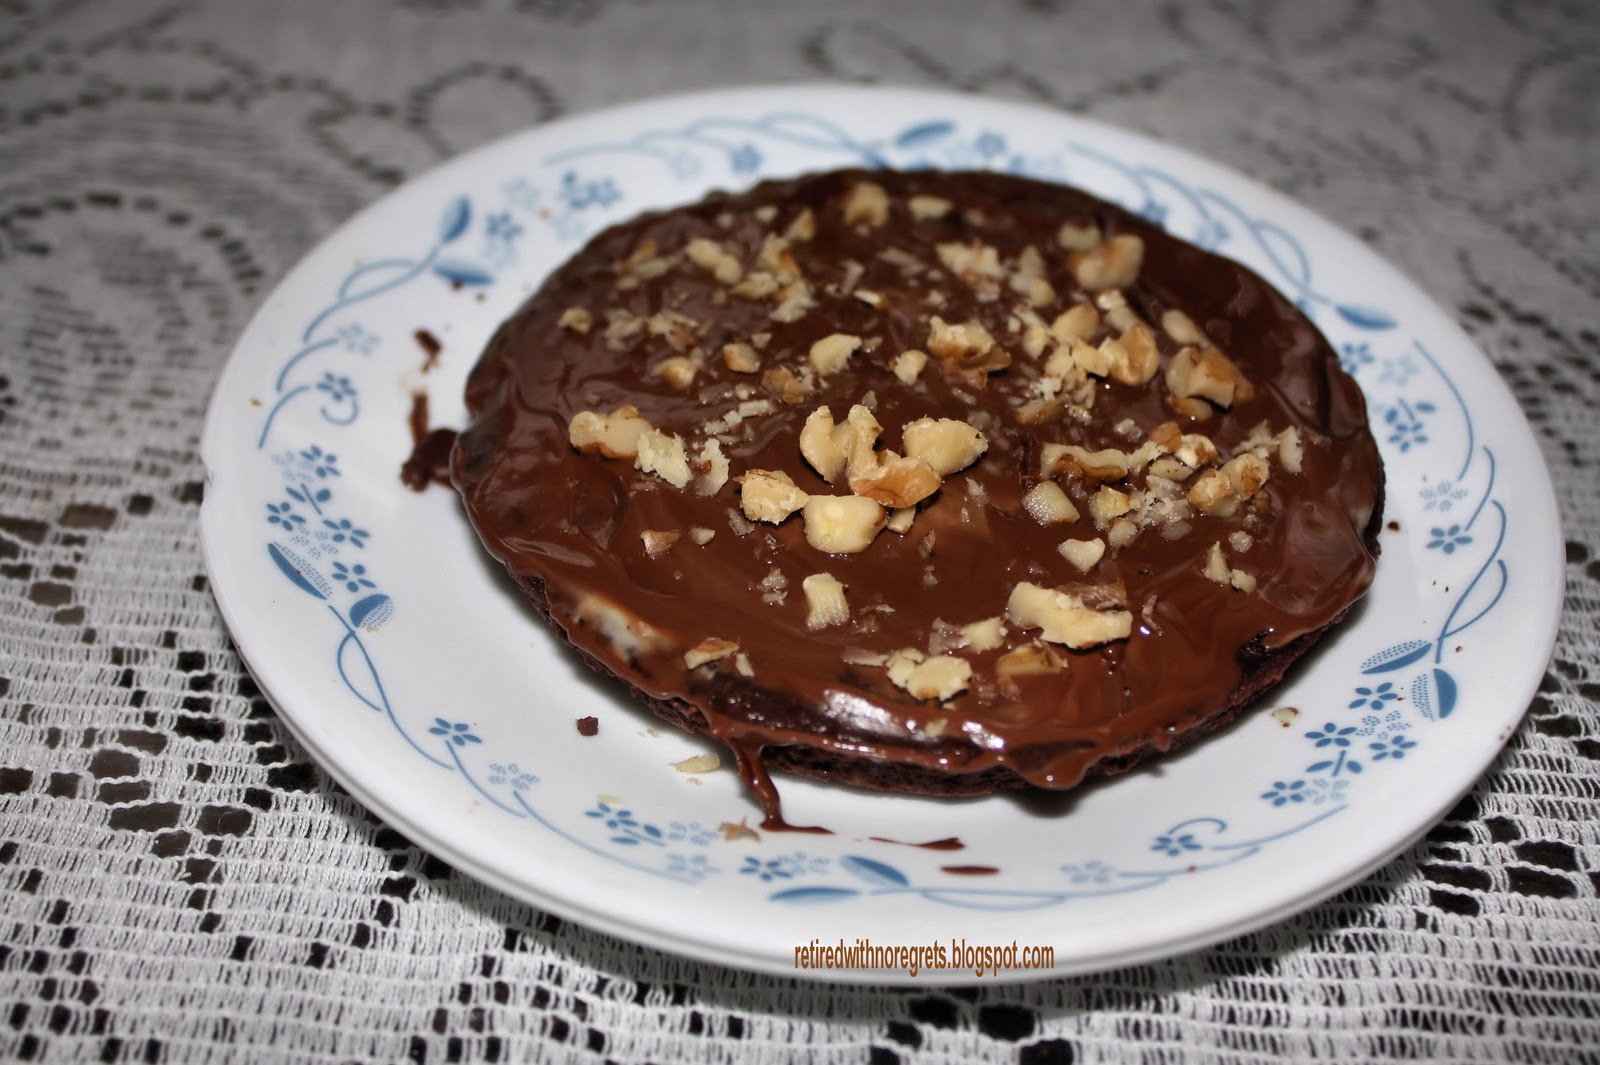 Low Sodium Chocolate Cake Recipe